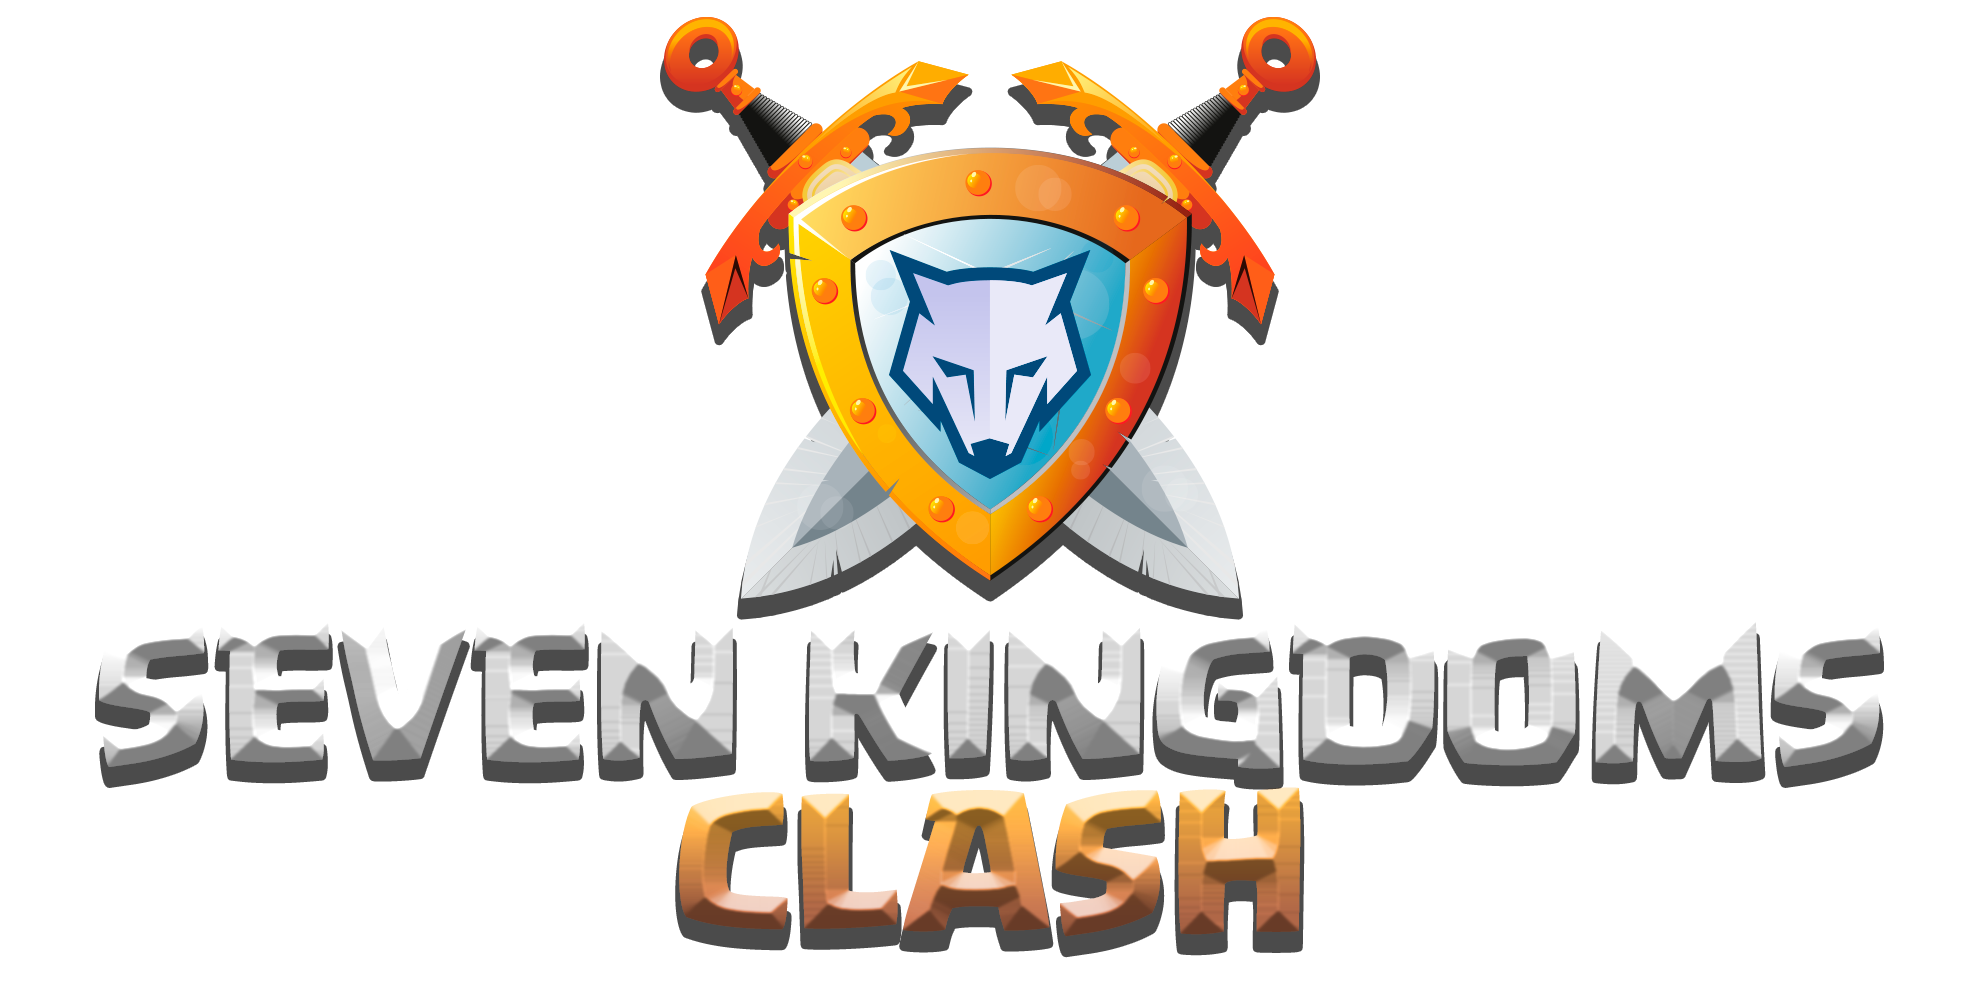 Seven kingdoms real time. Youtube clipart clash clans